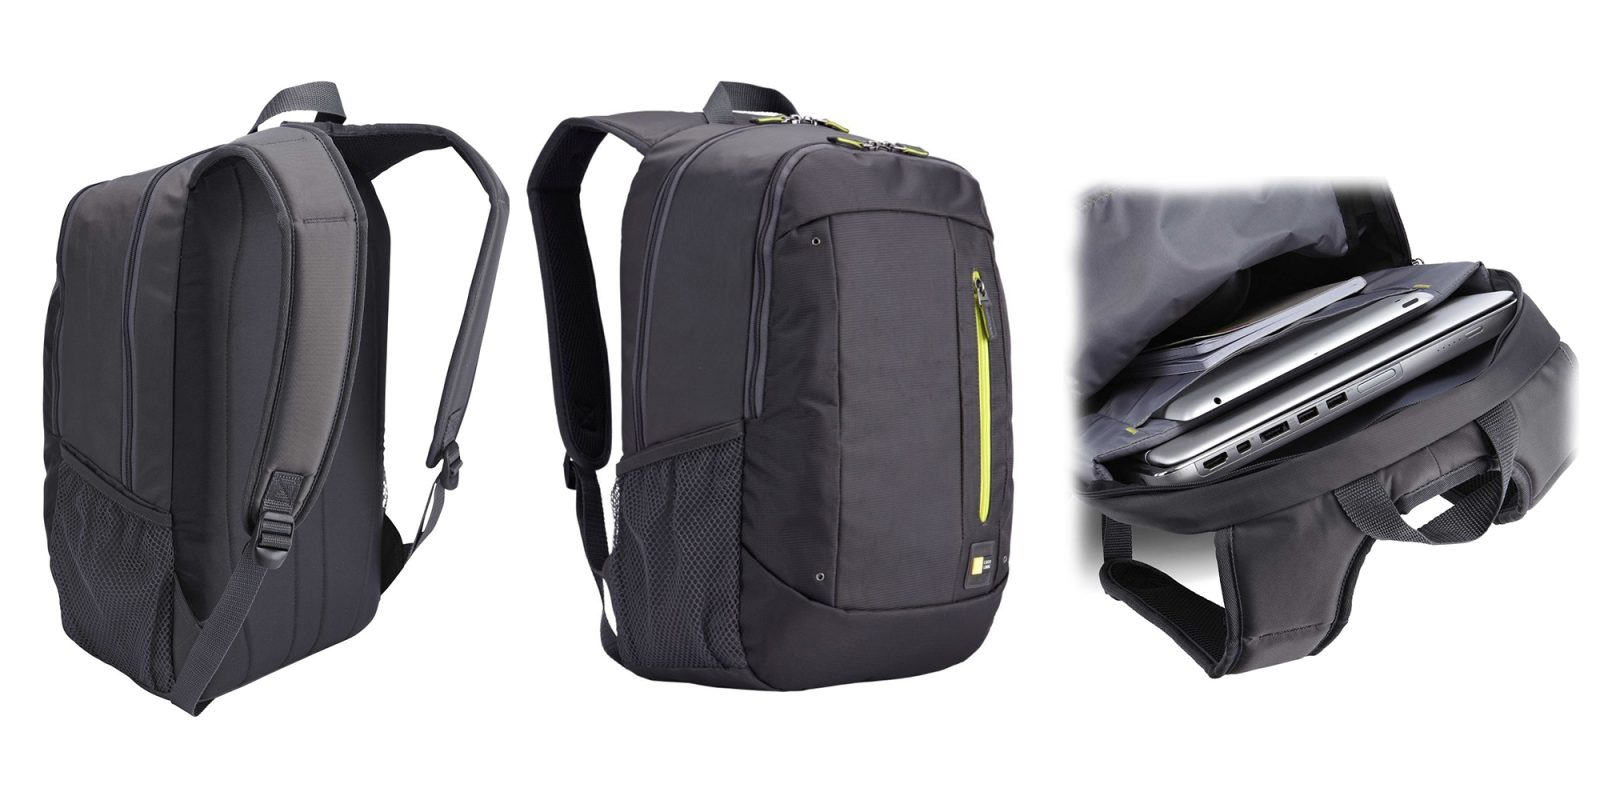 96ae4c94fc Nab yourself a Case Logic MacBook Backpack for  18 Prime shipped ...